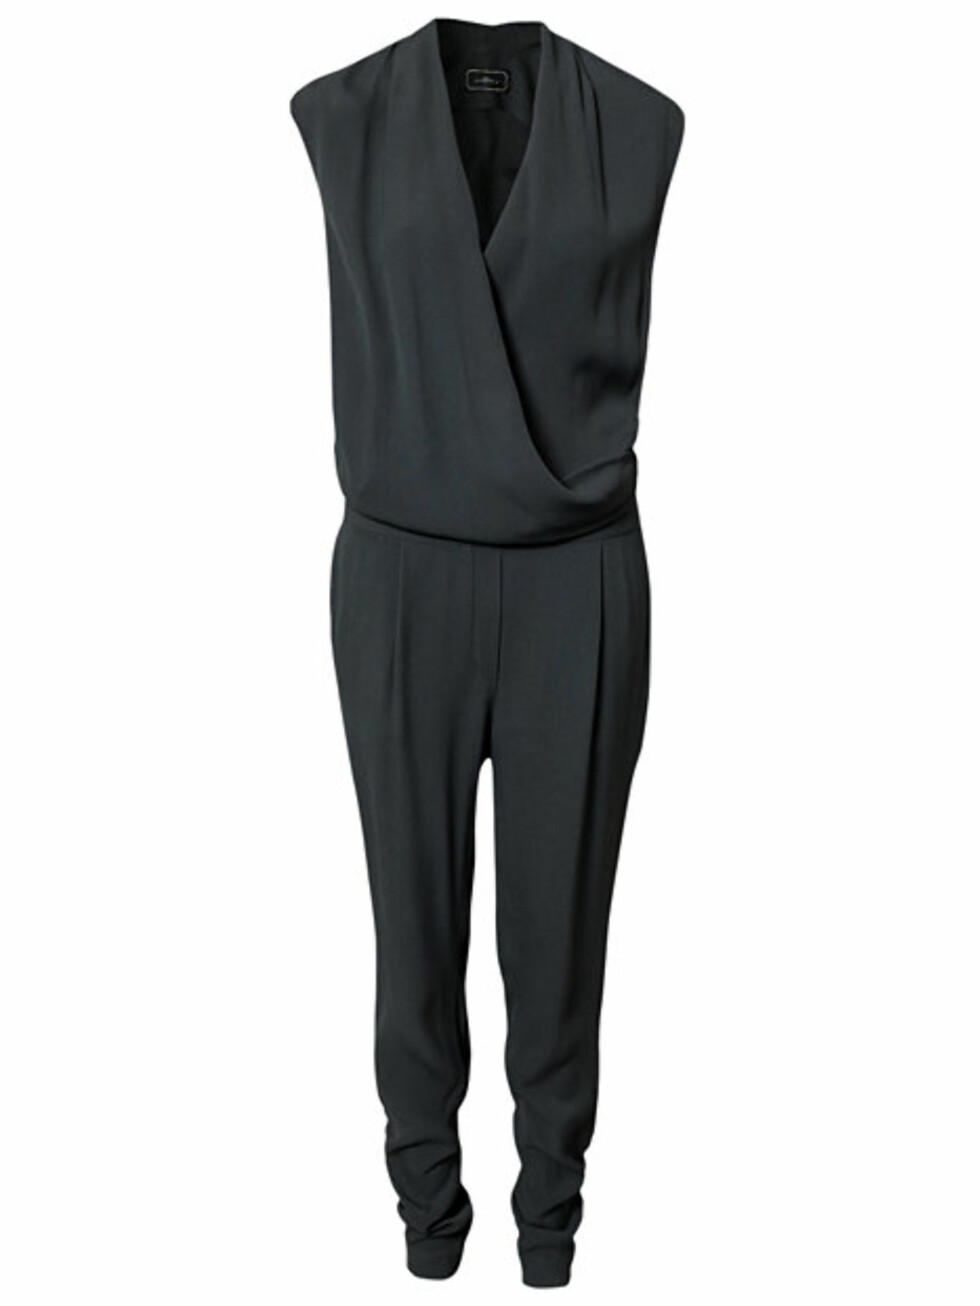 Jumpsuit fra By Malene Birger via Nelly.com, 2695 kr. Foto: Nelly.com